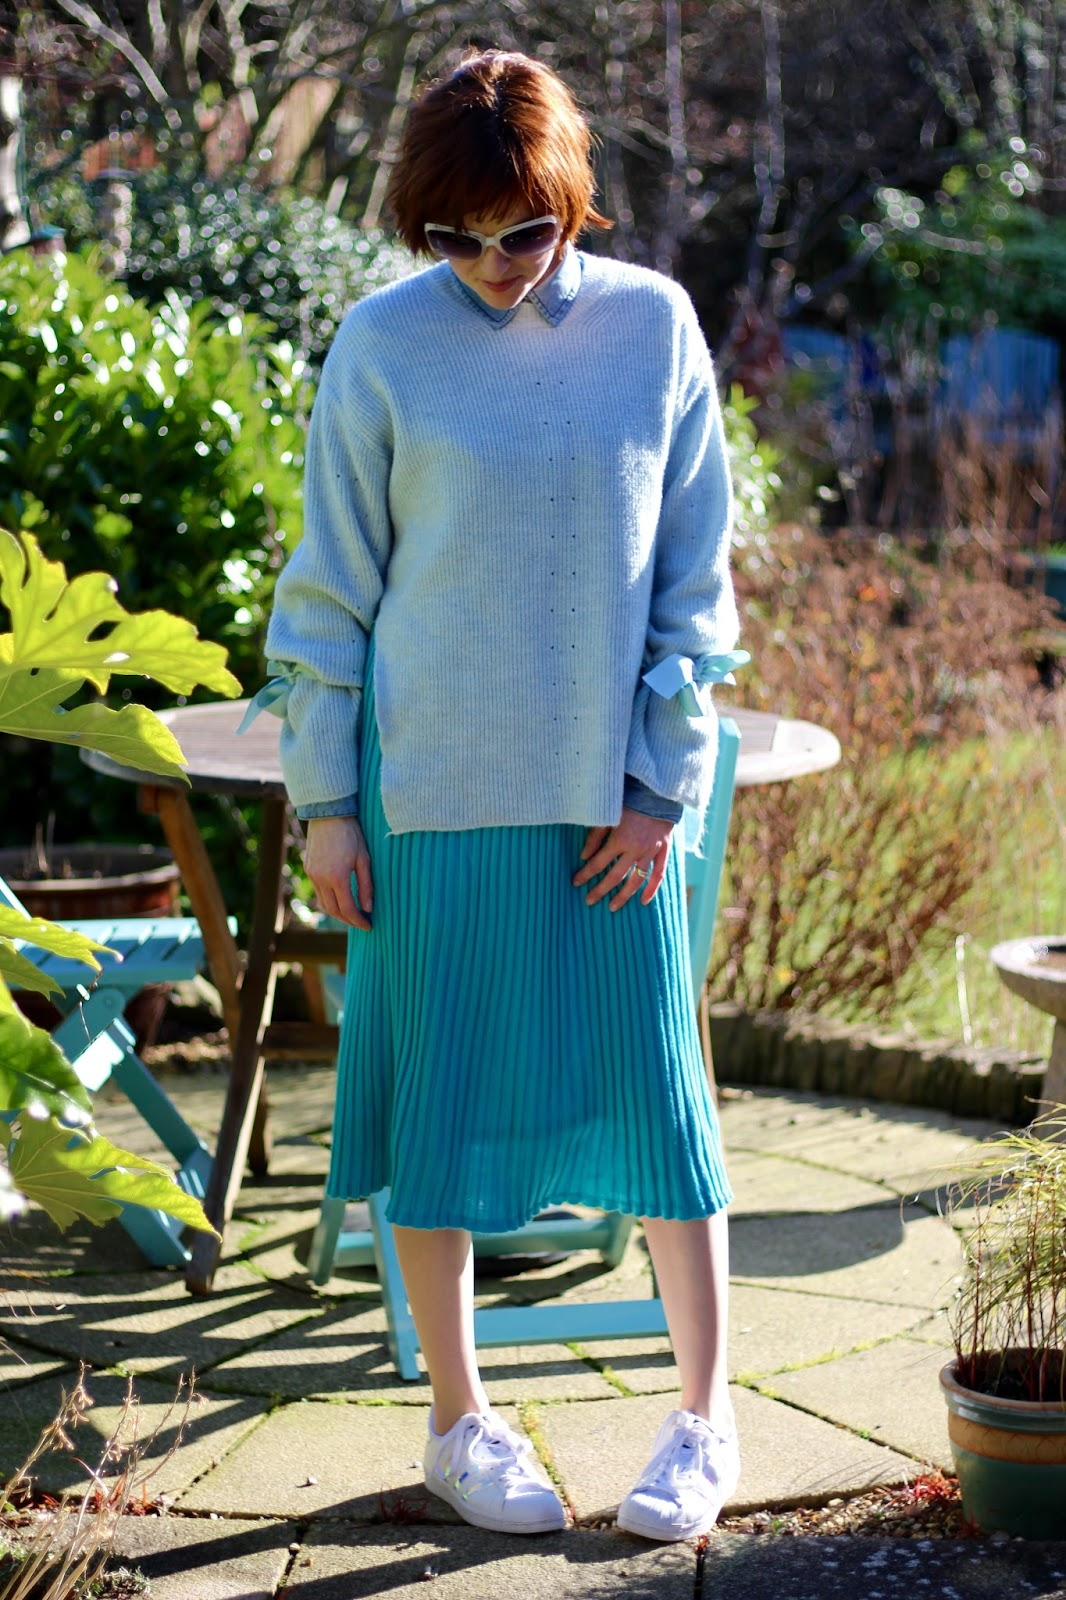 Vintage Pleated Midi Skirt, Superstars & Statement Sleeves, over 40!